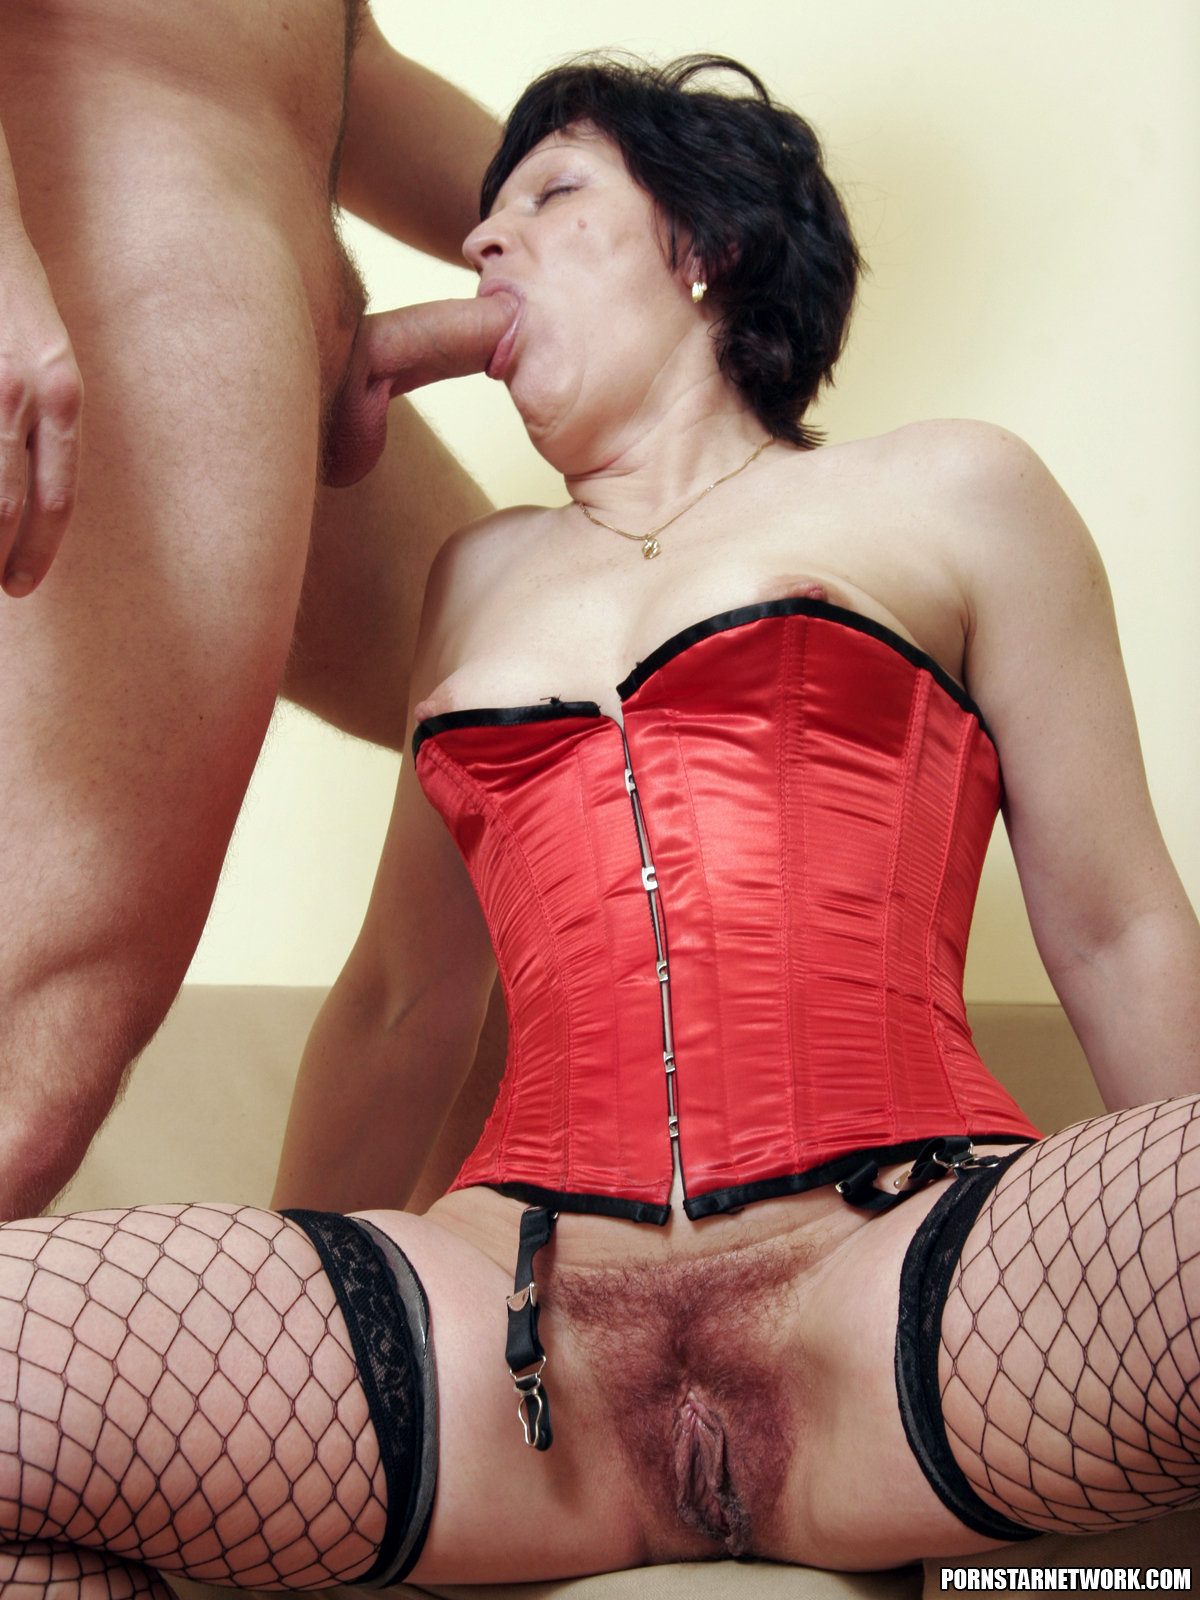 anal-hairy-corset-nudes-in-facebook